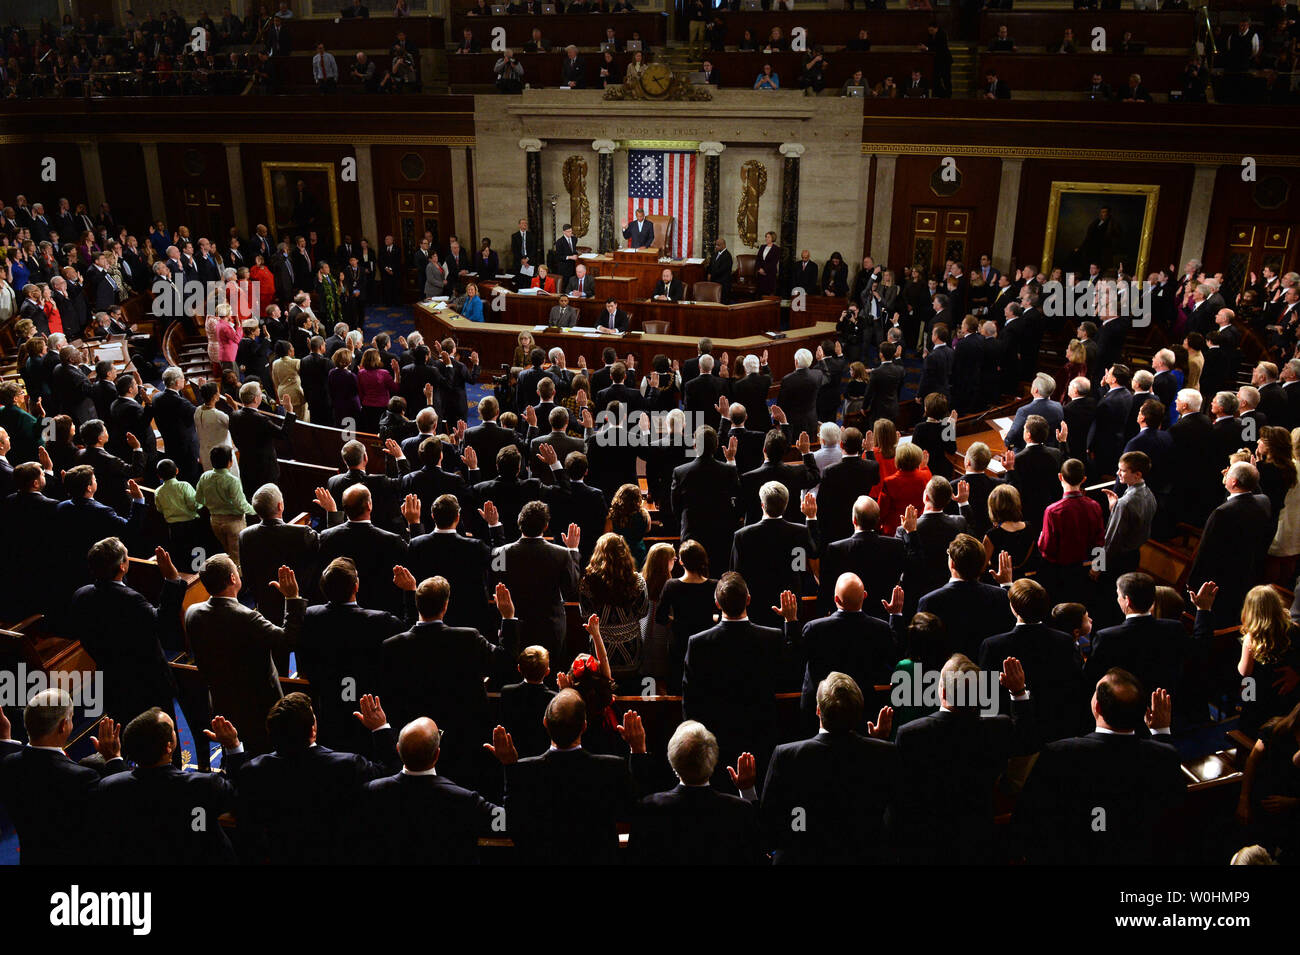 The 114th Congress is sworn-in by Speaker of the House John Boehner, R-OH, inside the House Chambers of the U.S. Capitol Building in Washington, D.C. on January 6, 2015. Photo by Kevin Dietsch/UPI - Stock Image